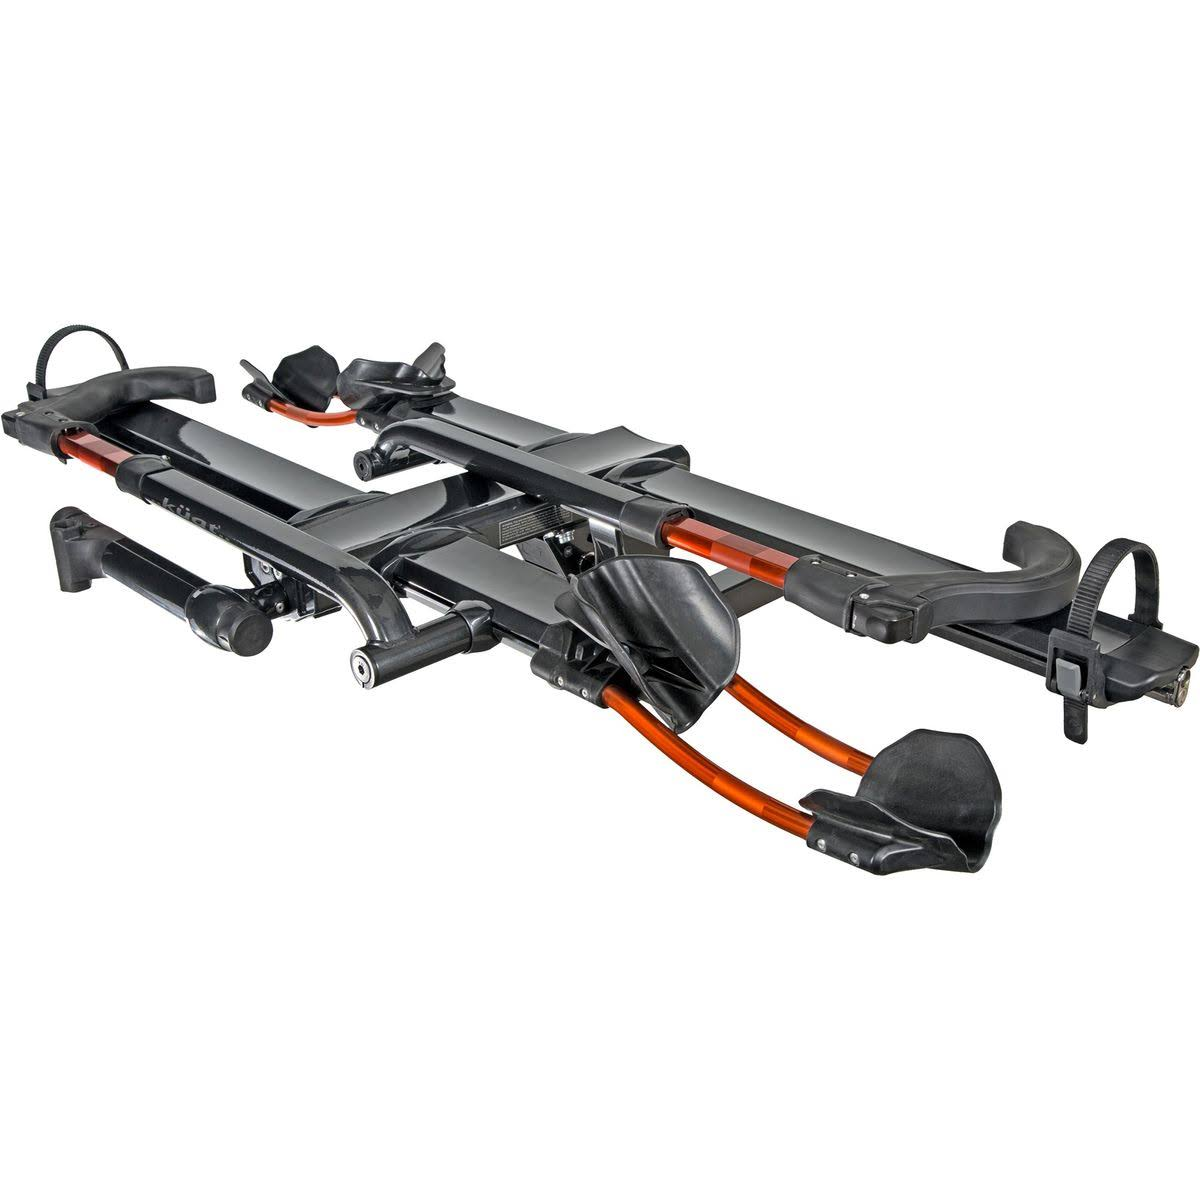 Kuat NV 2.0 2-Bike Tray Hitch Rack - Metallic Gray & Orange